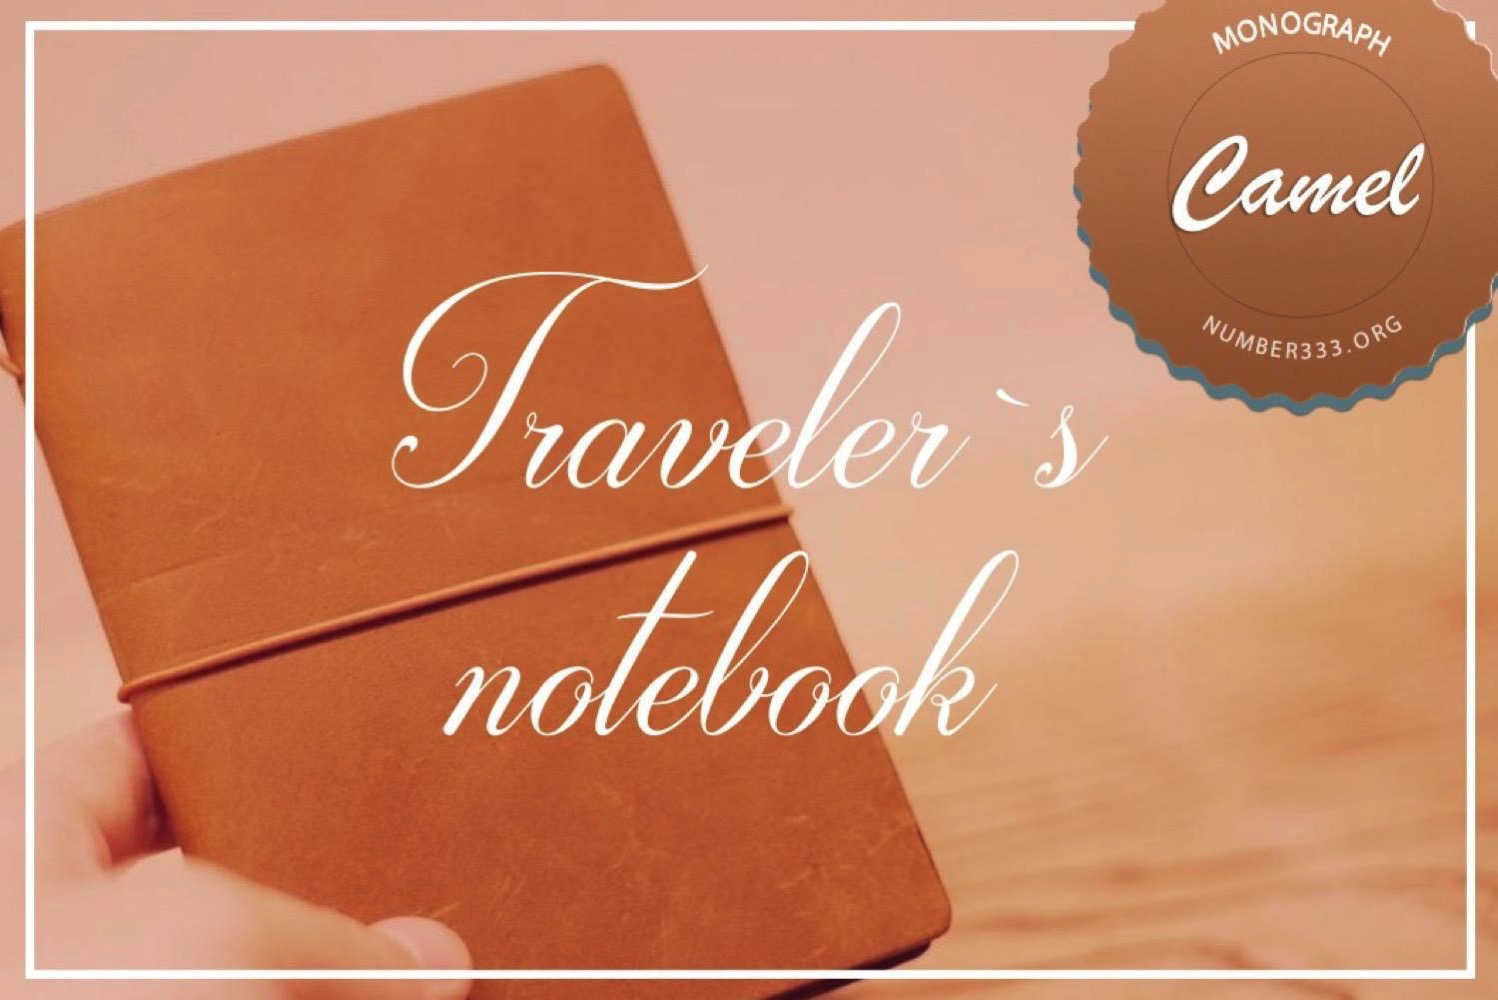 Travelers notebook camel1